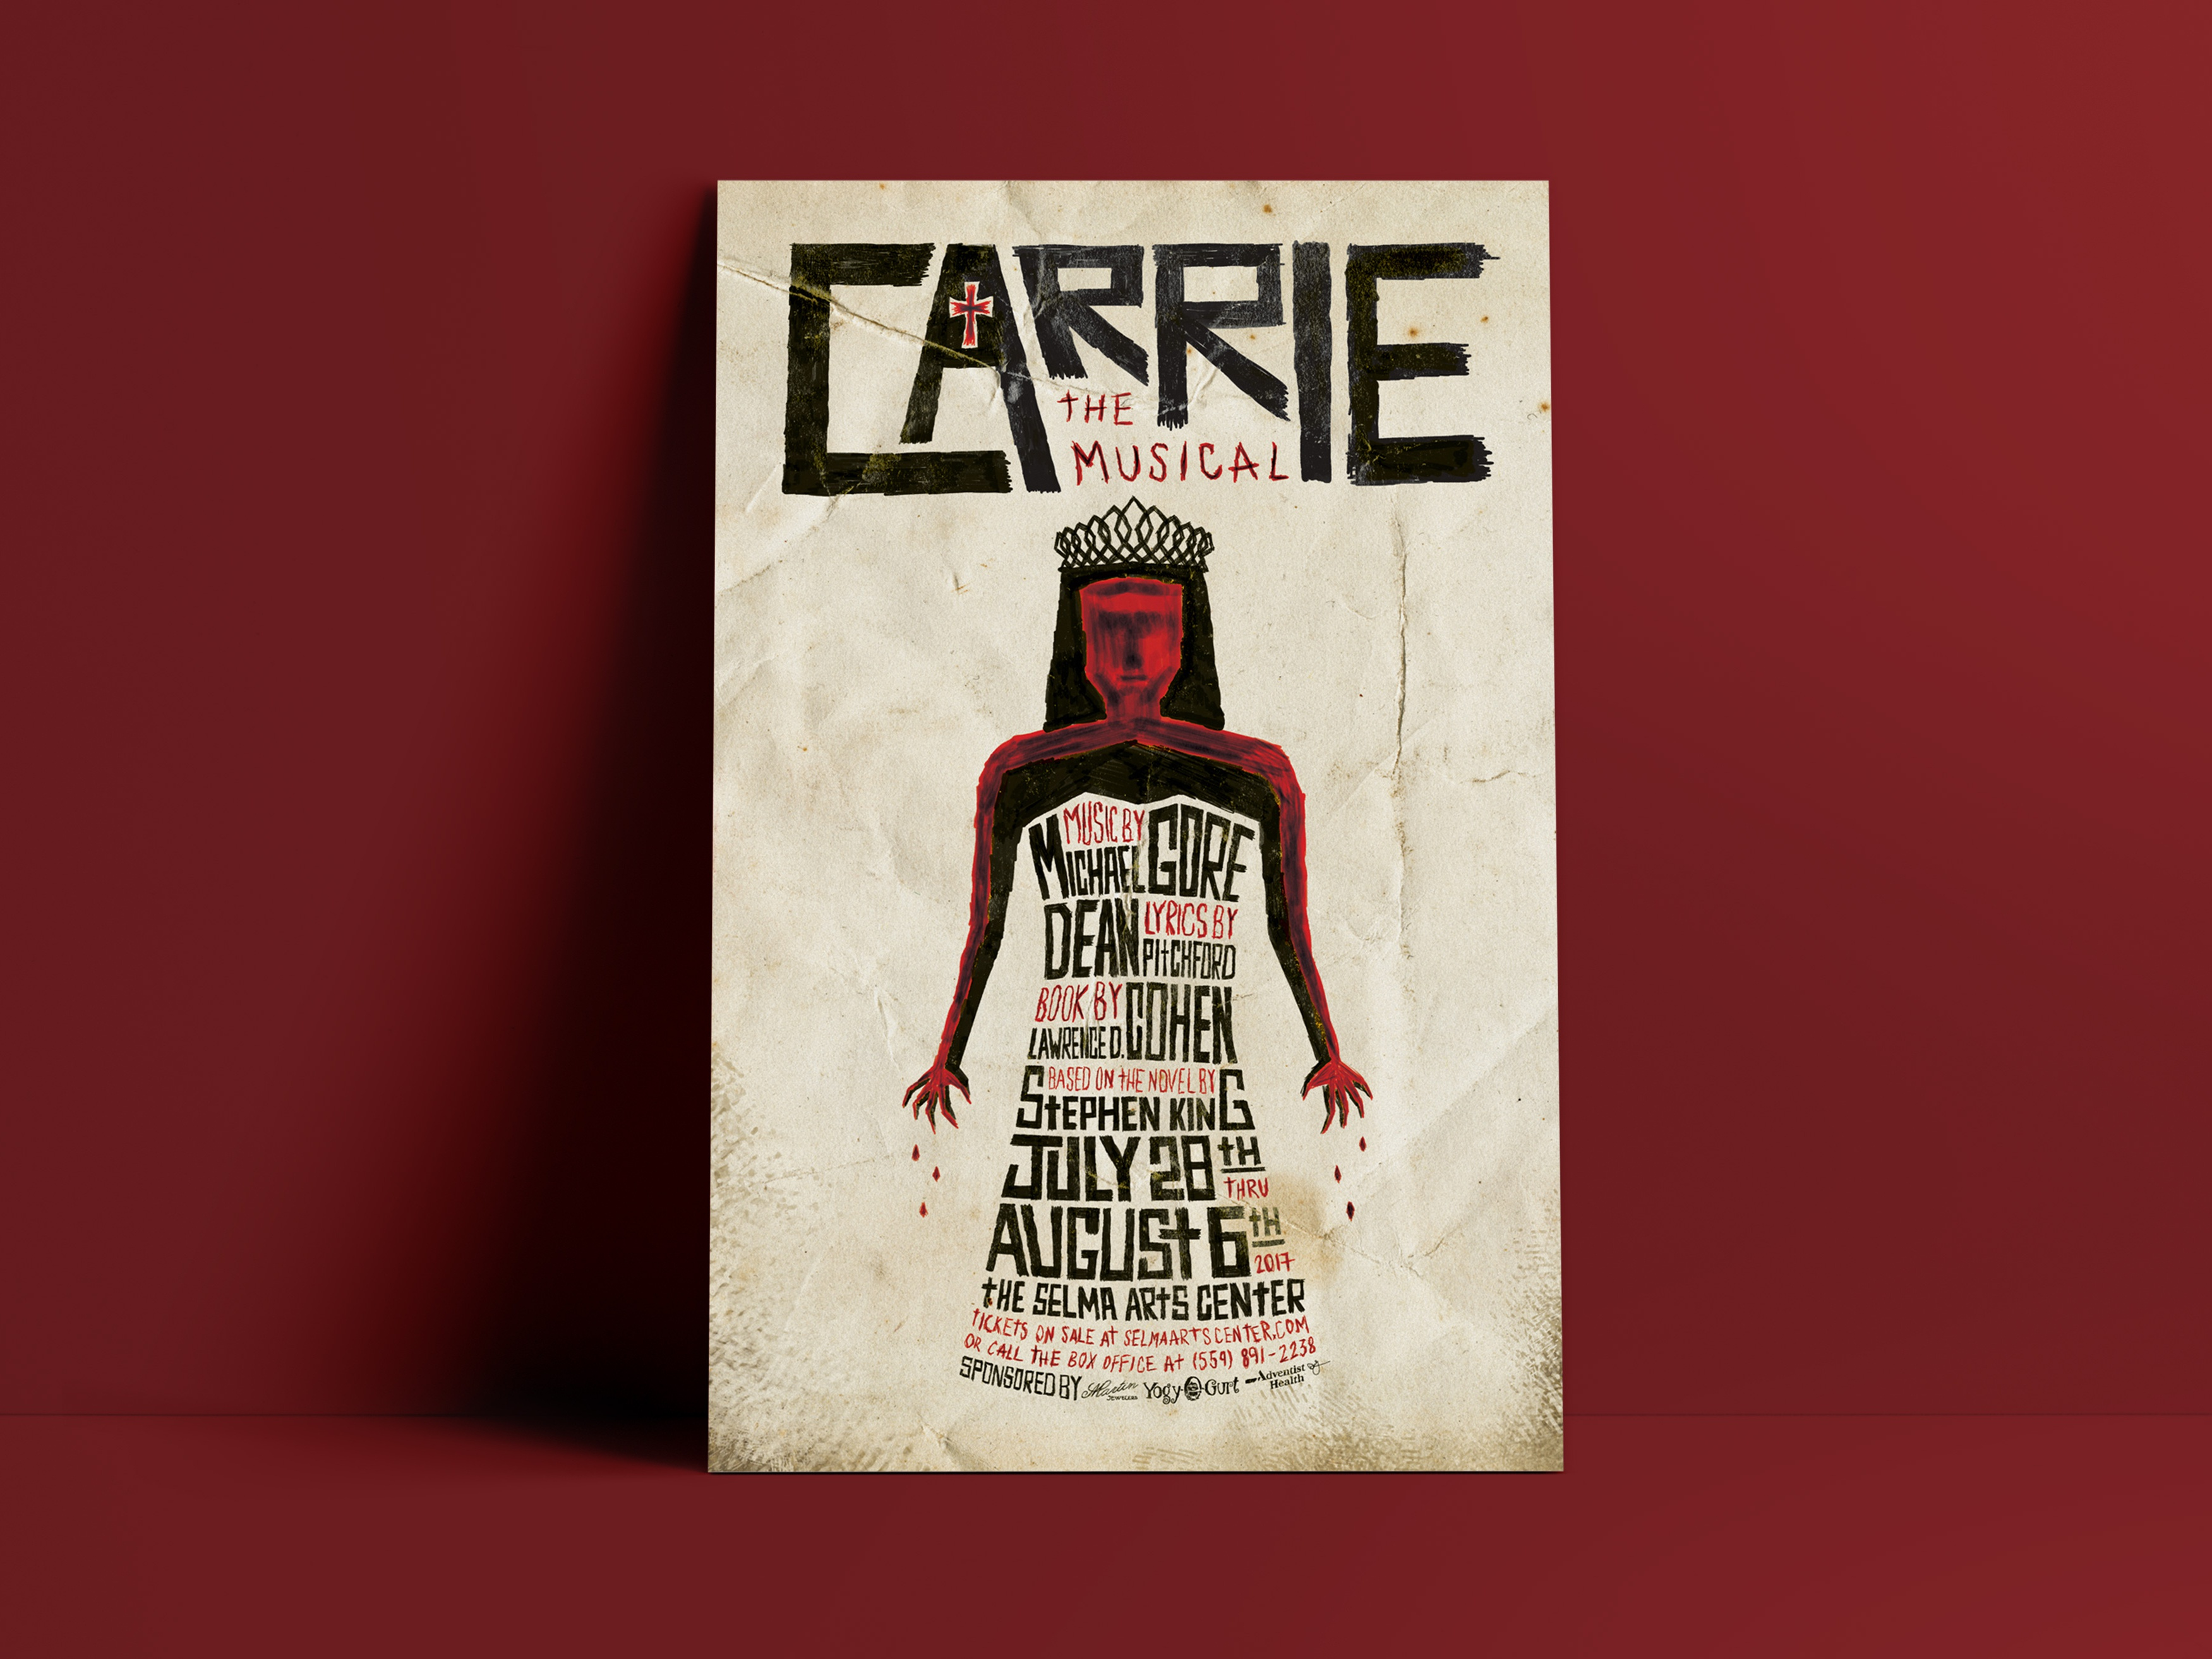 Carrie etsy